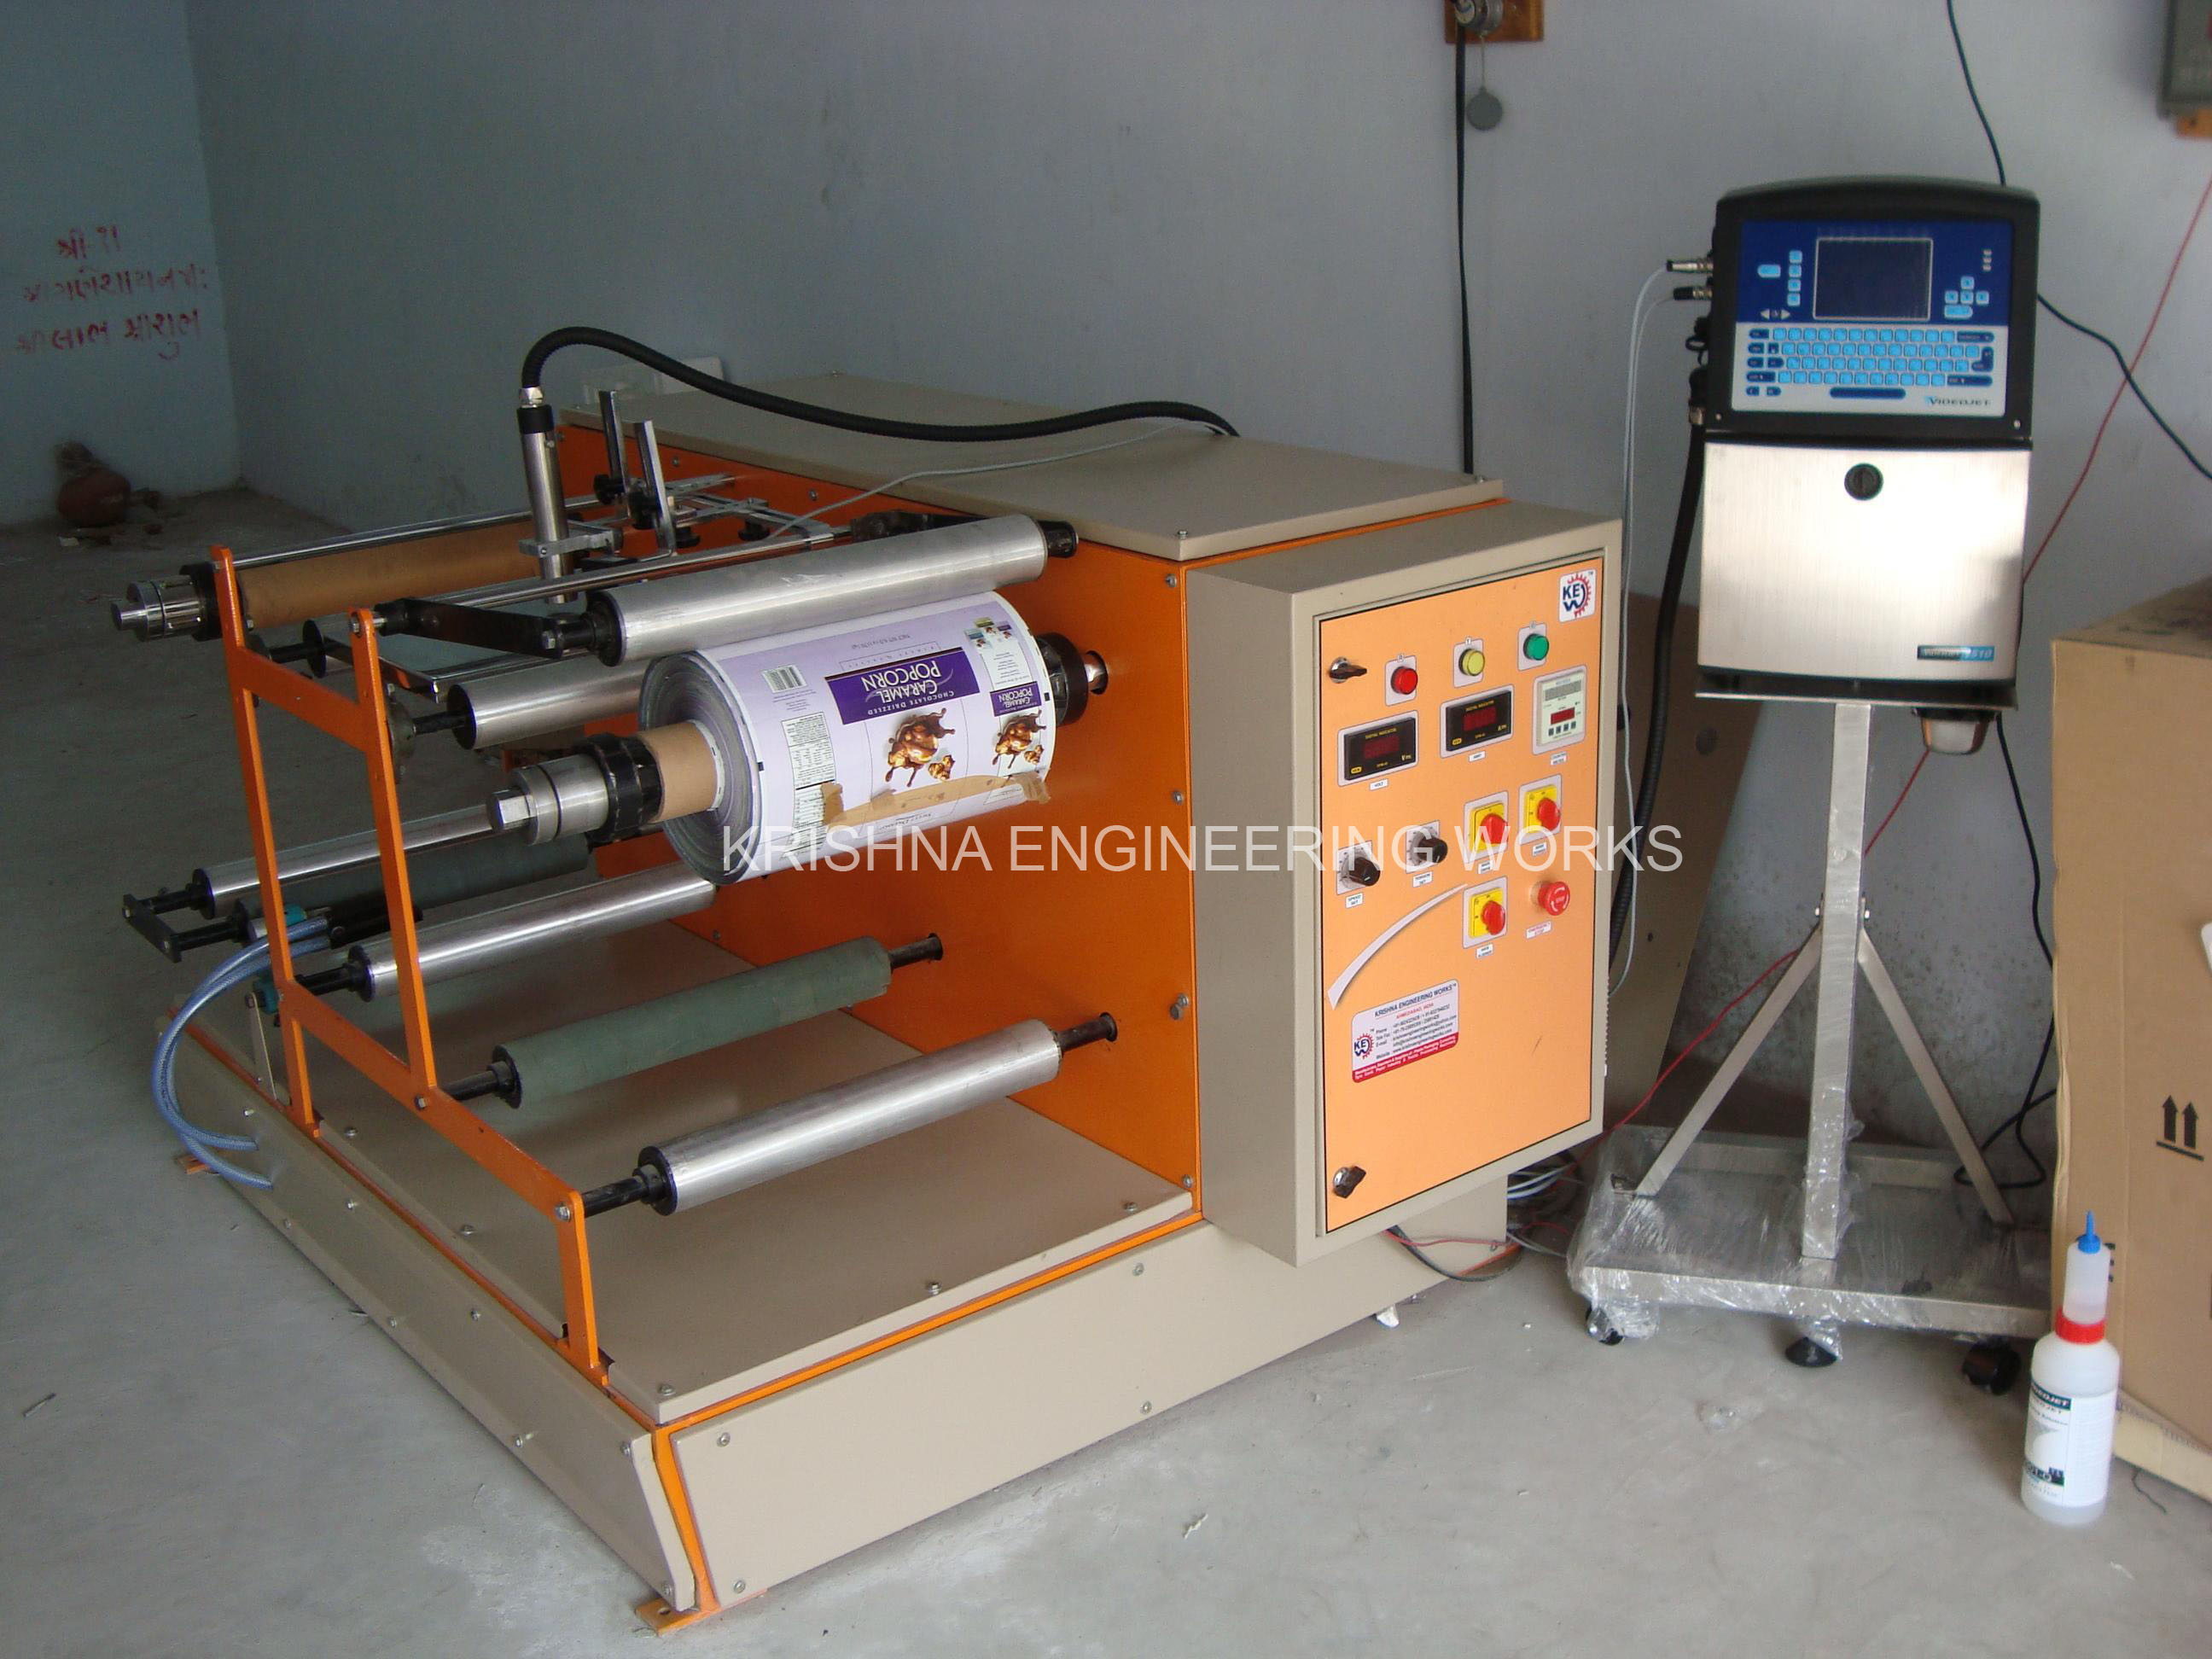 "<a href=""http://www.krishnaengineeringworks.fr/machine-de-enroulement-de-rebobinage/"">Machine de Enroulement de Rebobinage</a>"